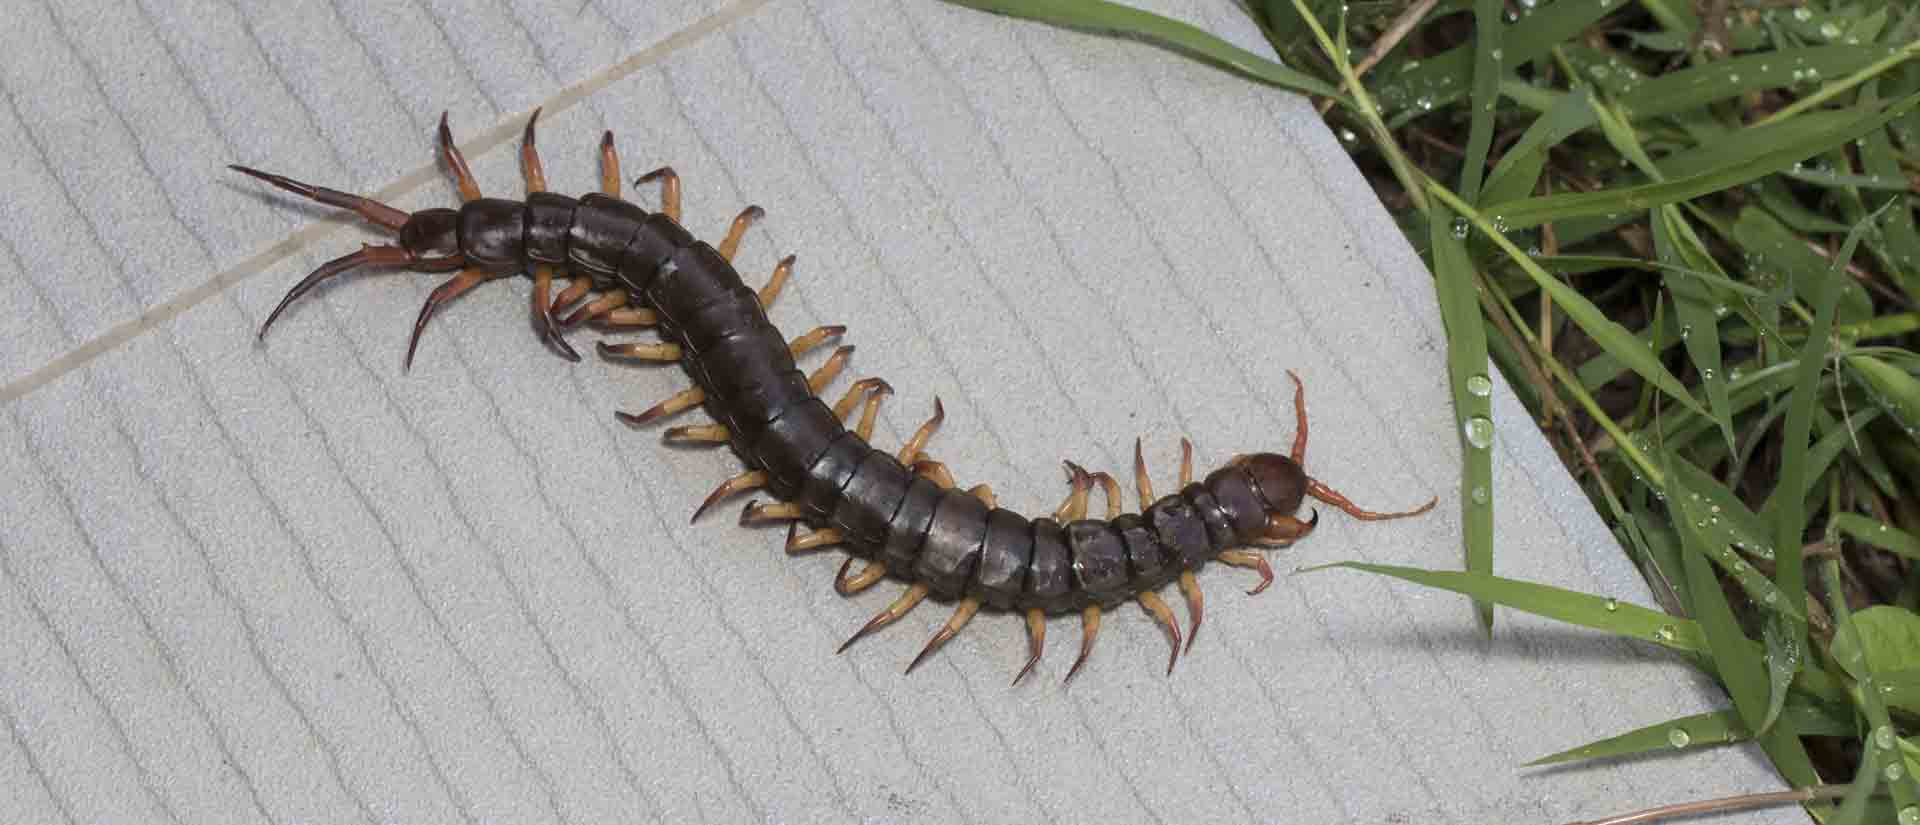 centipede pest control mission valley